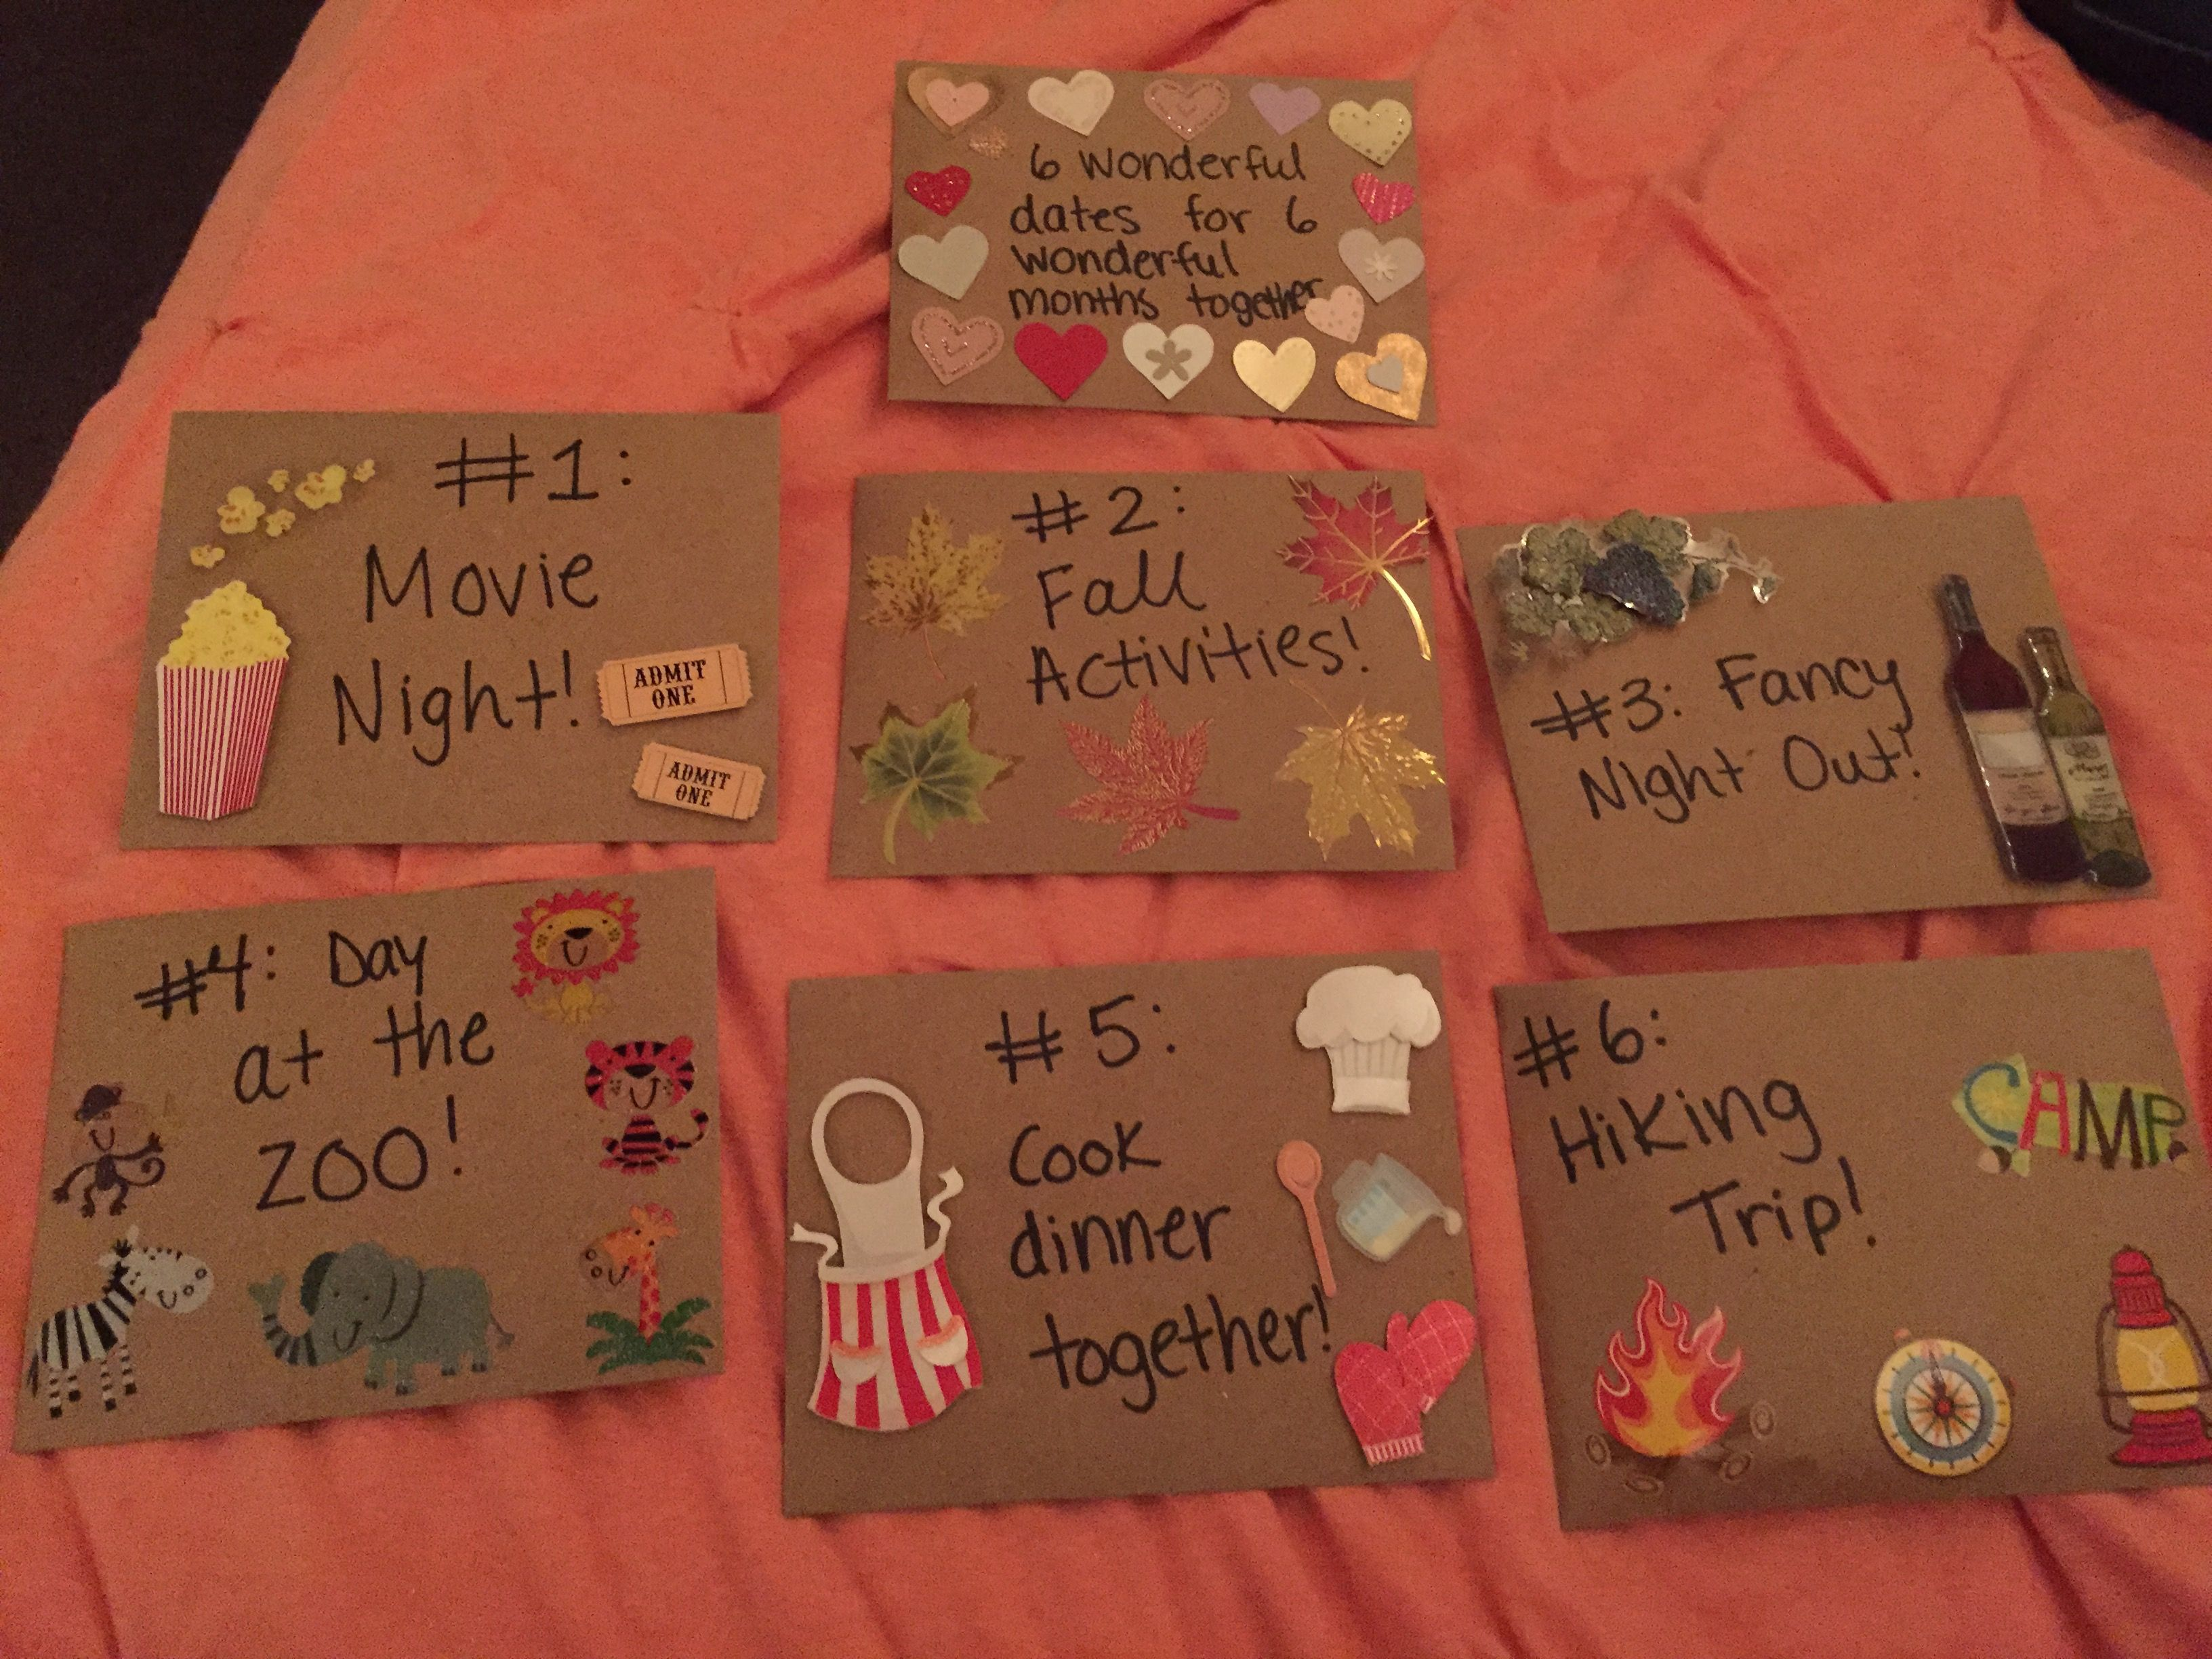 6 Month Anniversary Gift For My Boyfriend 6 Dates For 6 Wonderful Months 6 Month Anniversary Dating Anniversary Gifts Anniversary Boyfriend